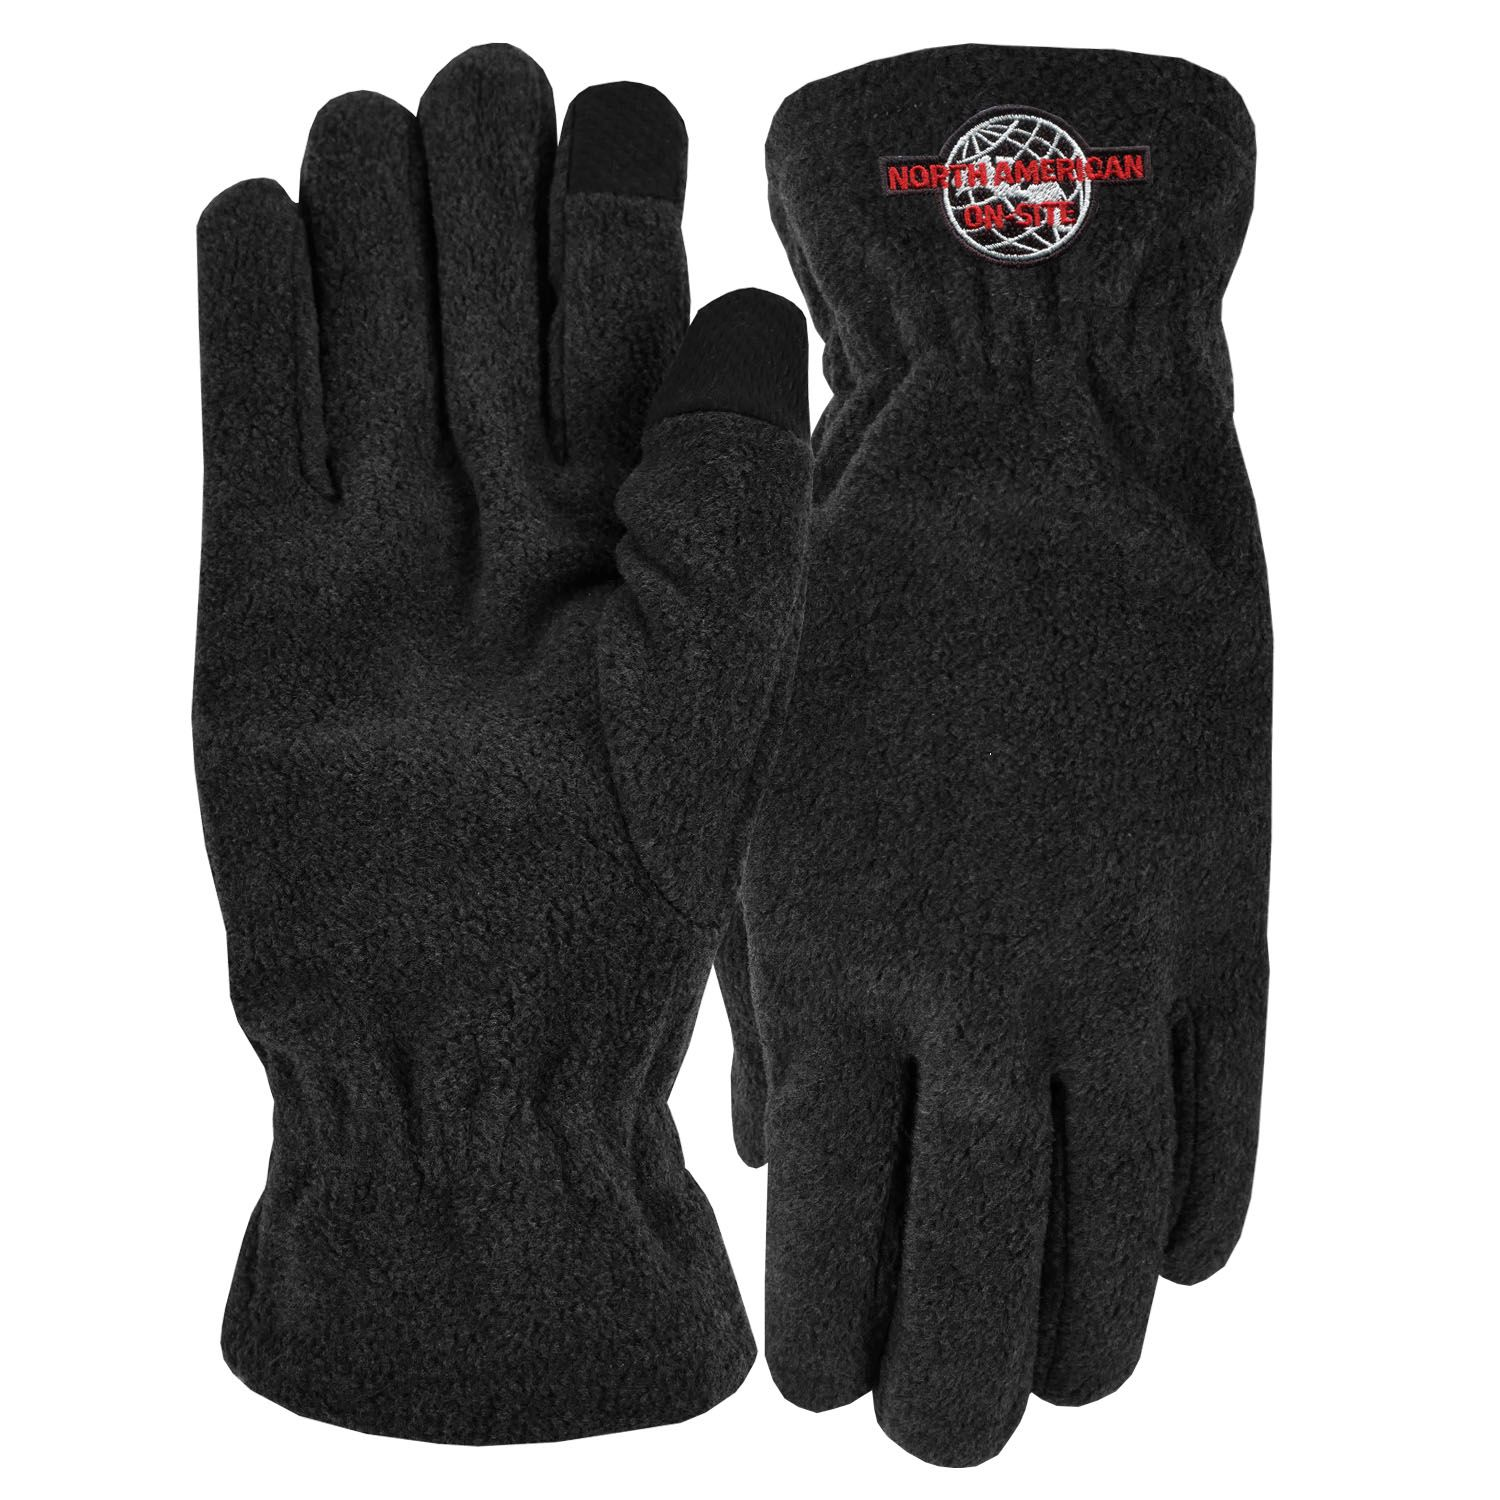 Pin by Suntex Industries on New Products Gloves, Product